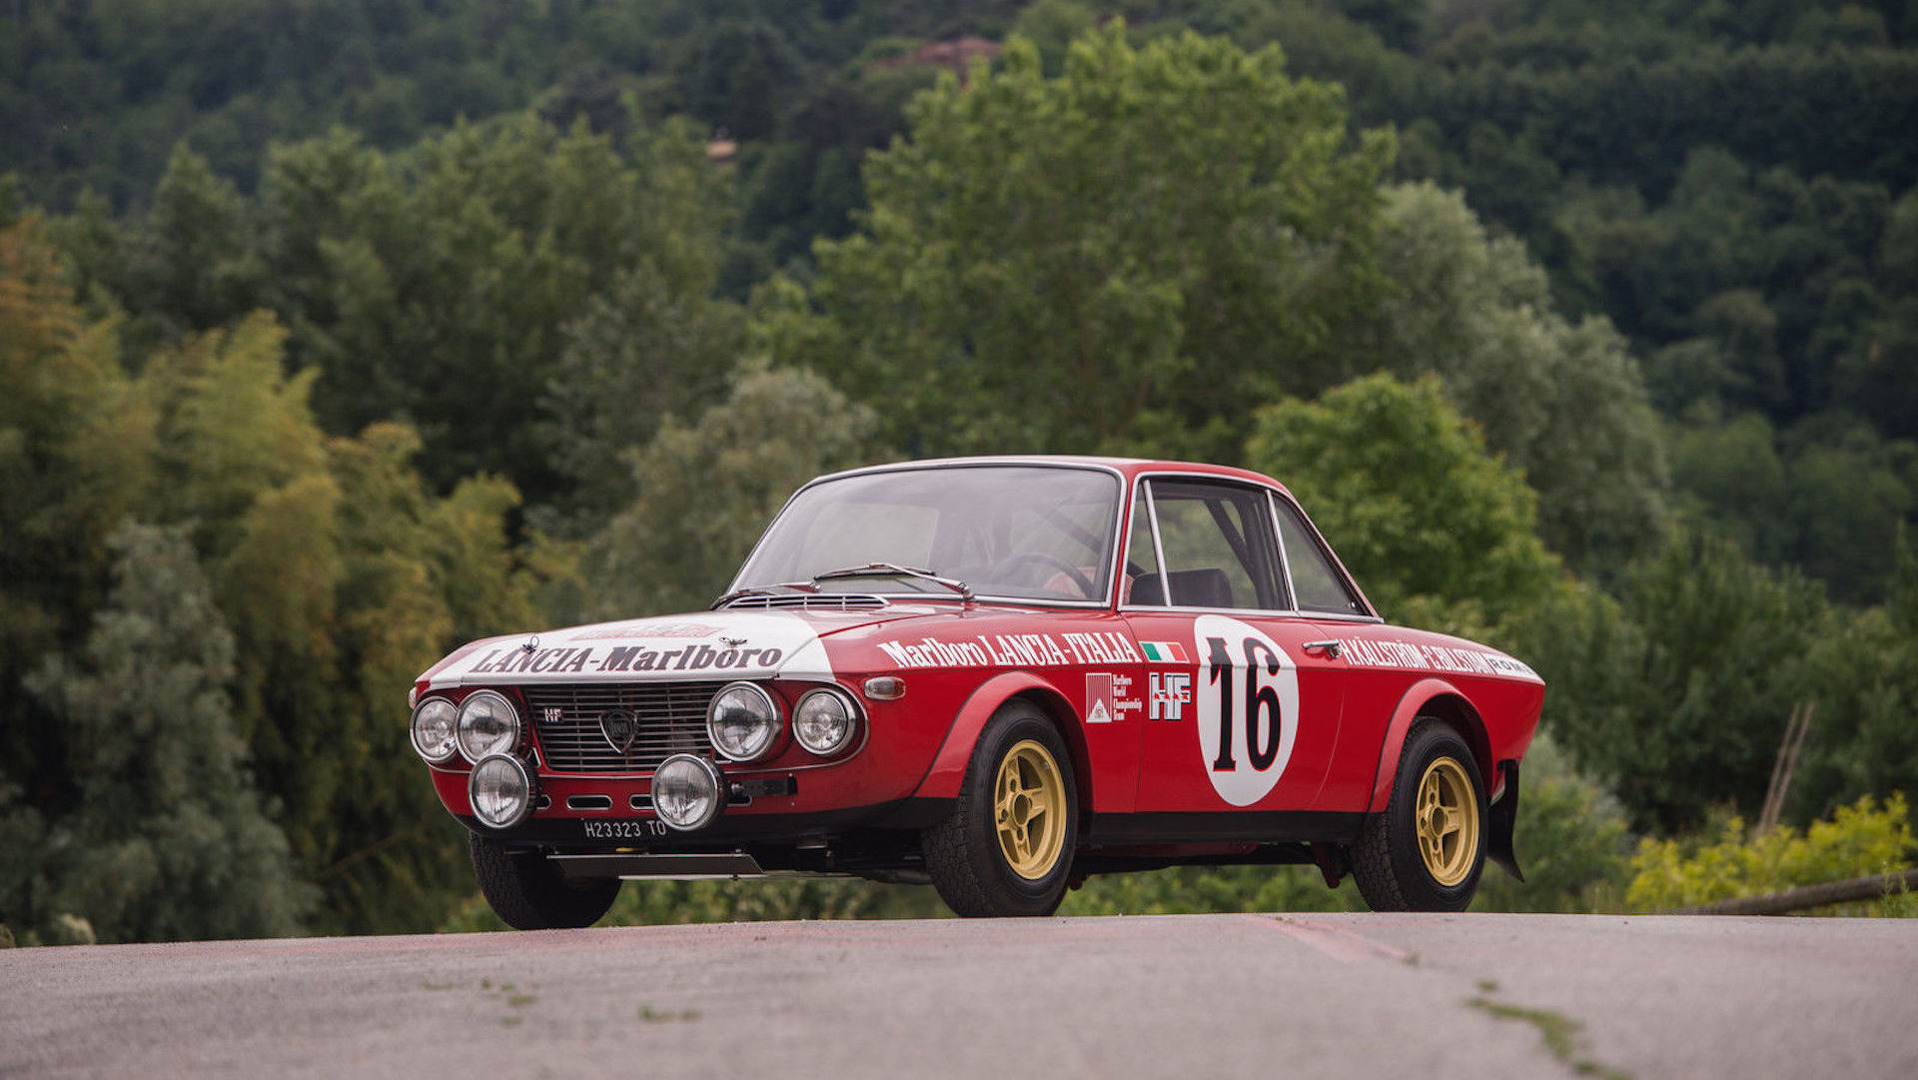 Pristine 1970 Lancia Fulvia rally car for sale on eBay